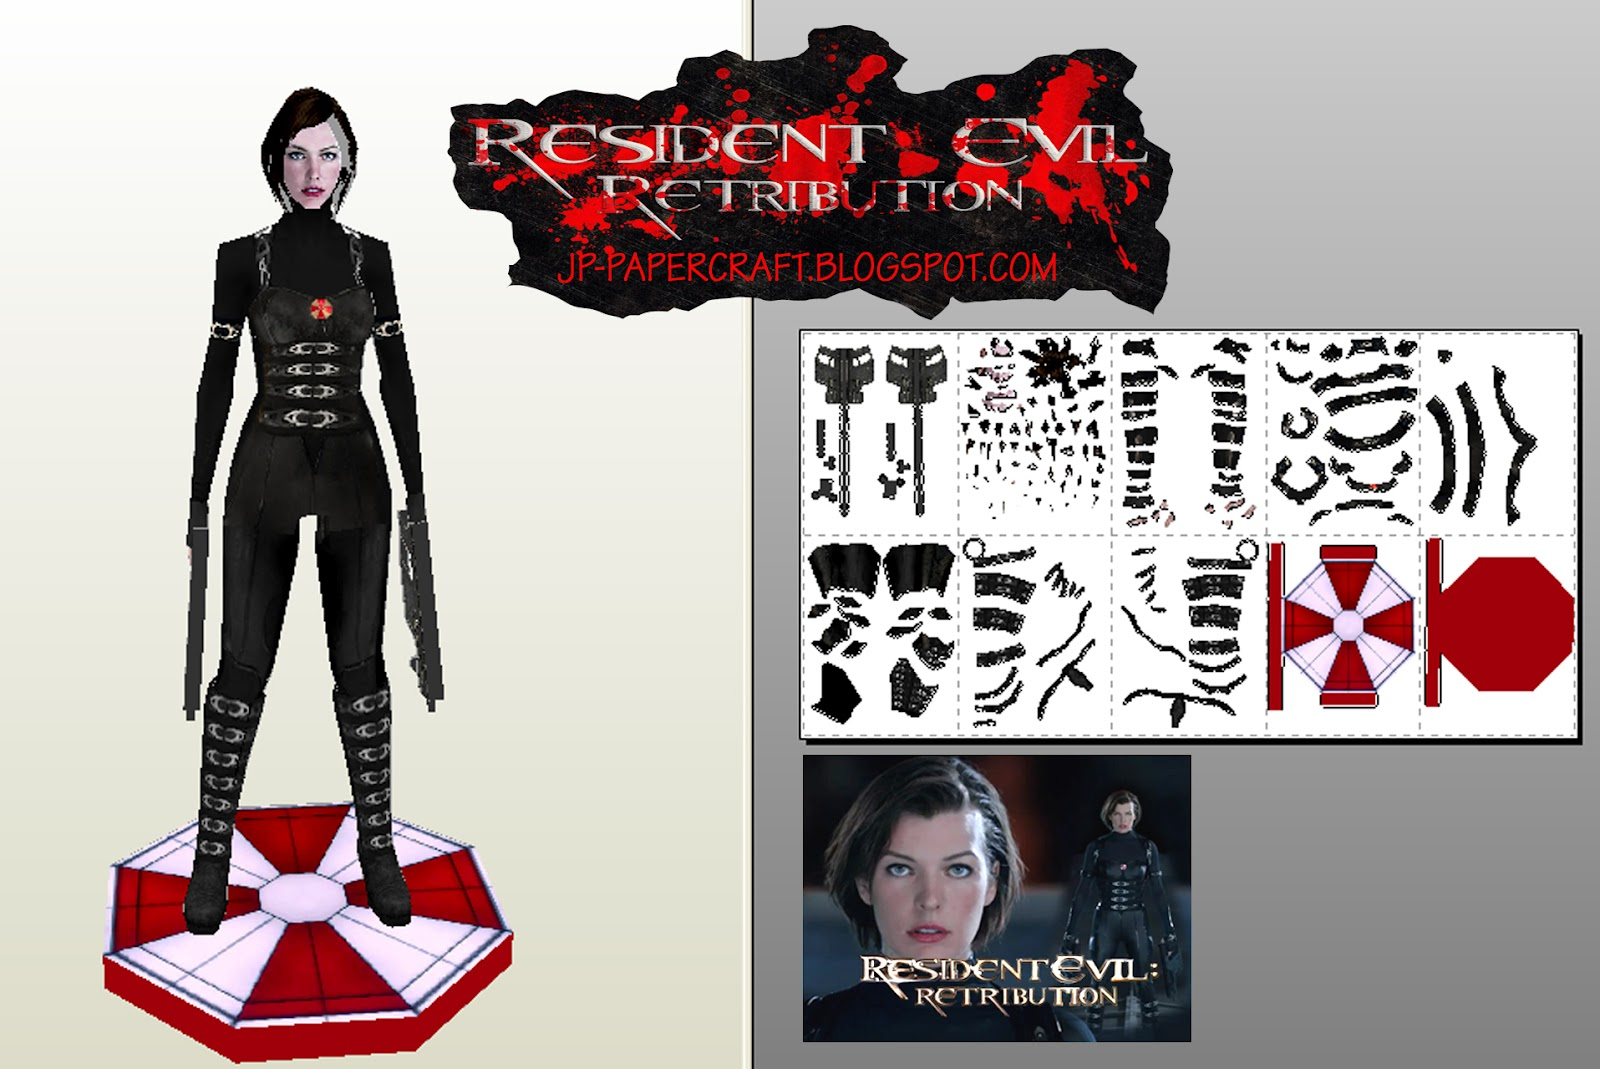 Resdient Evil Retribution Papercraft Alice